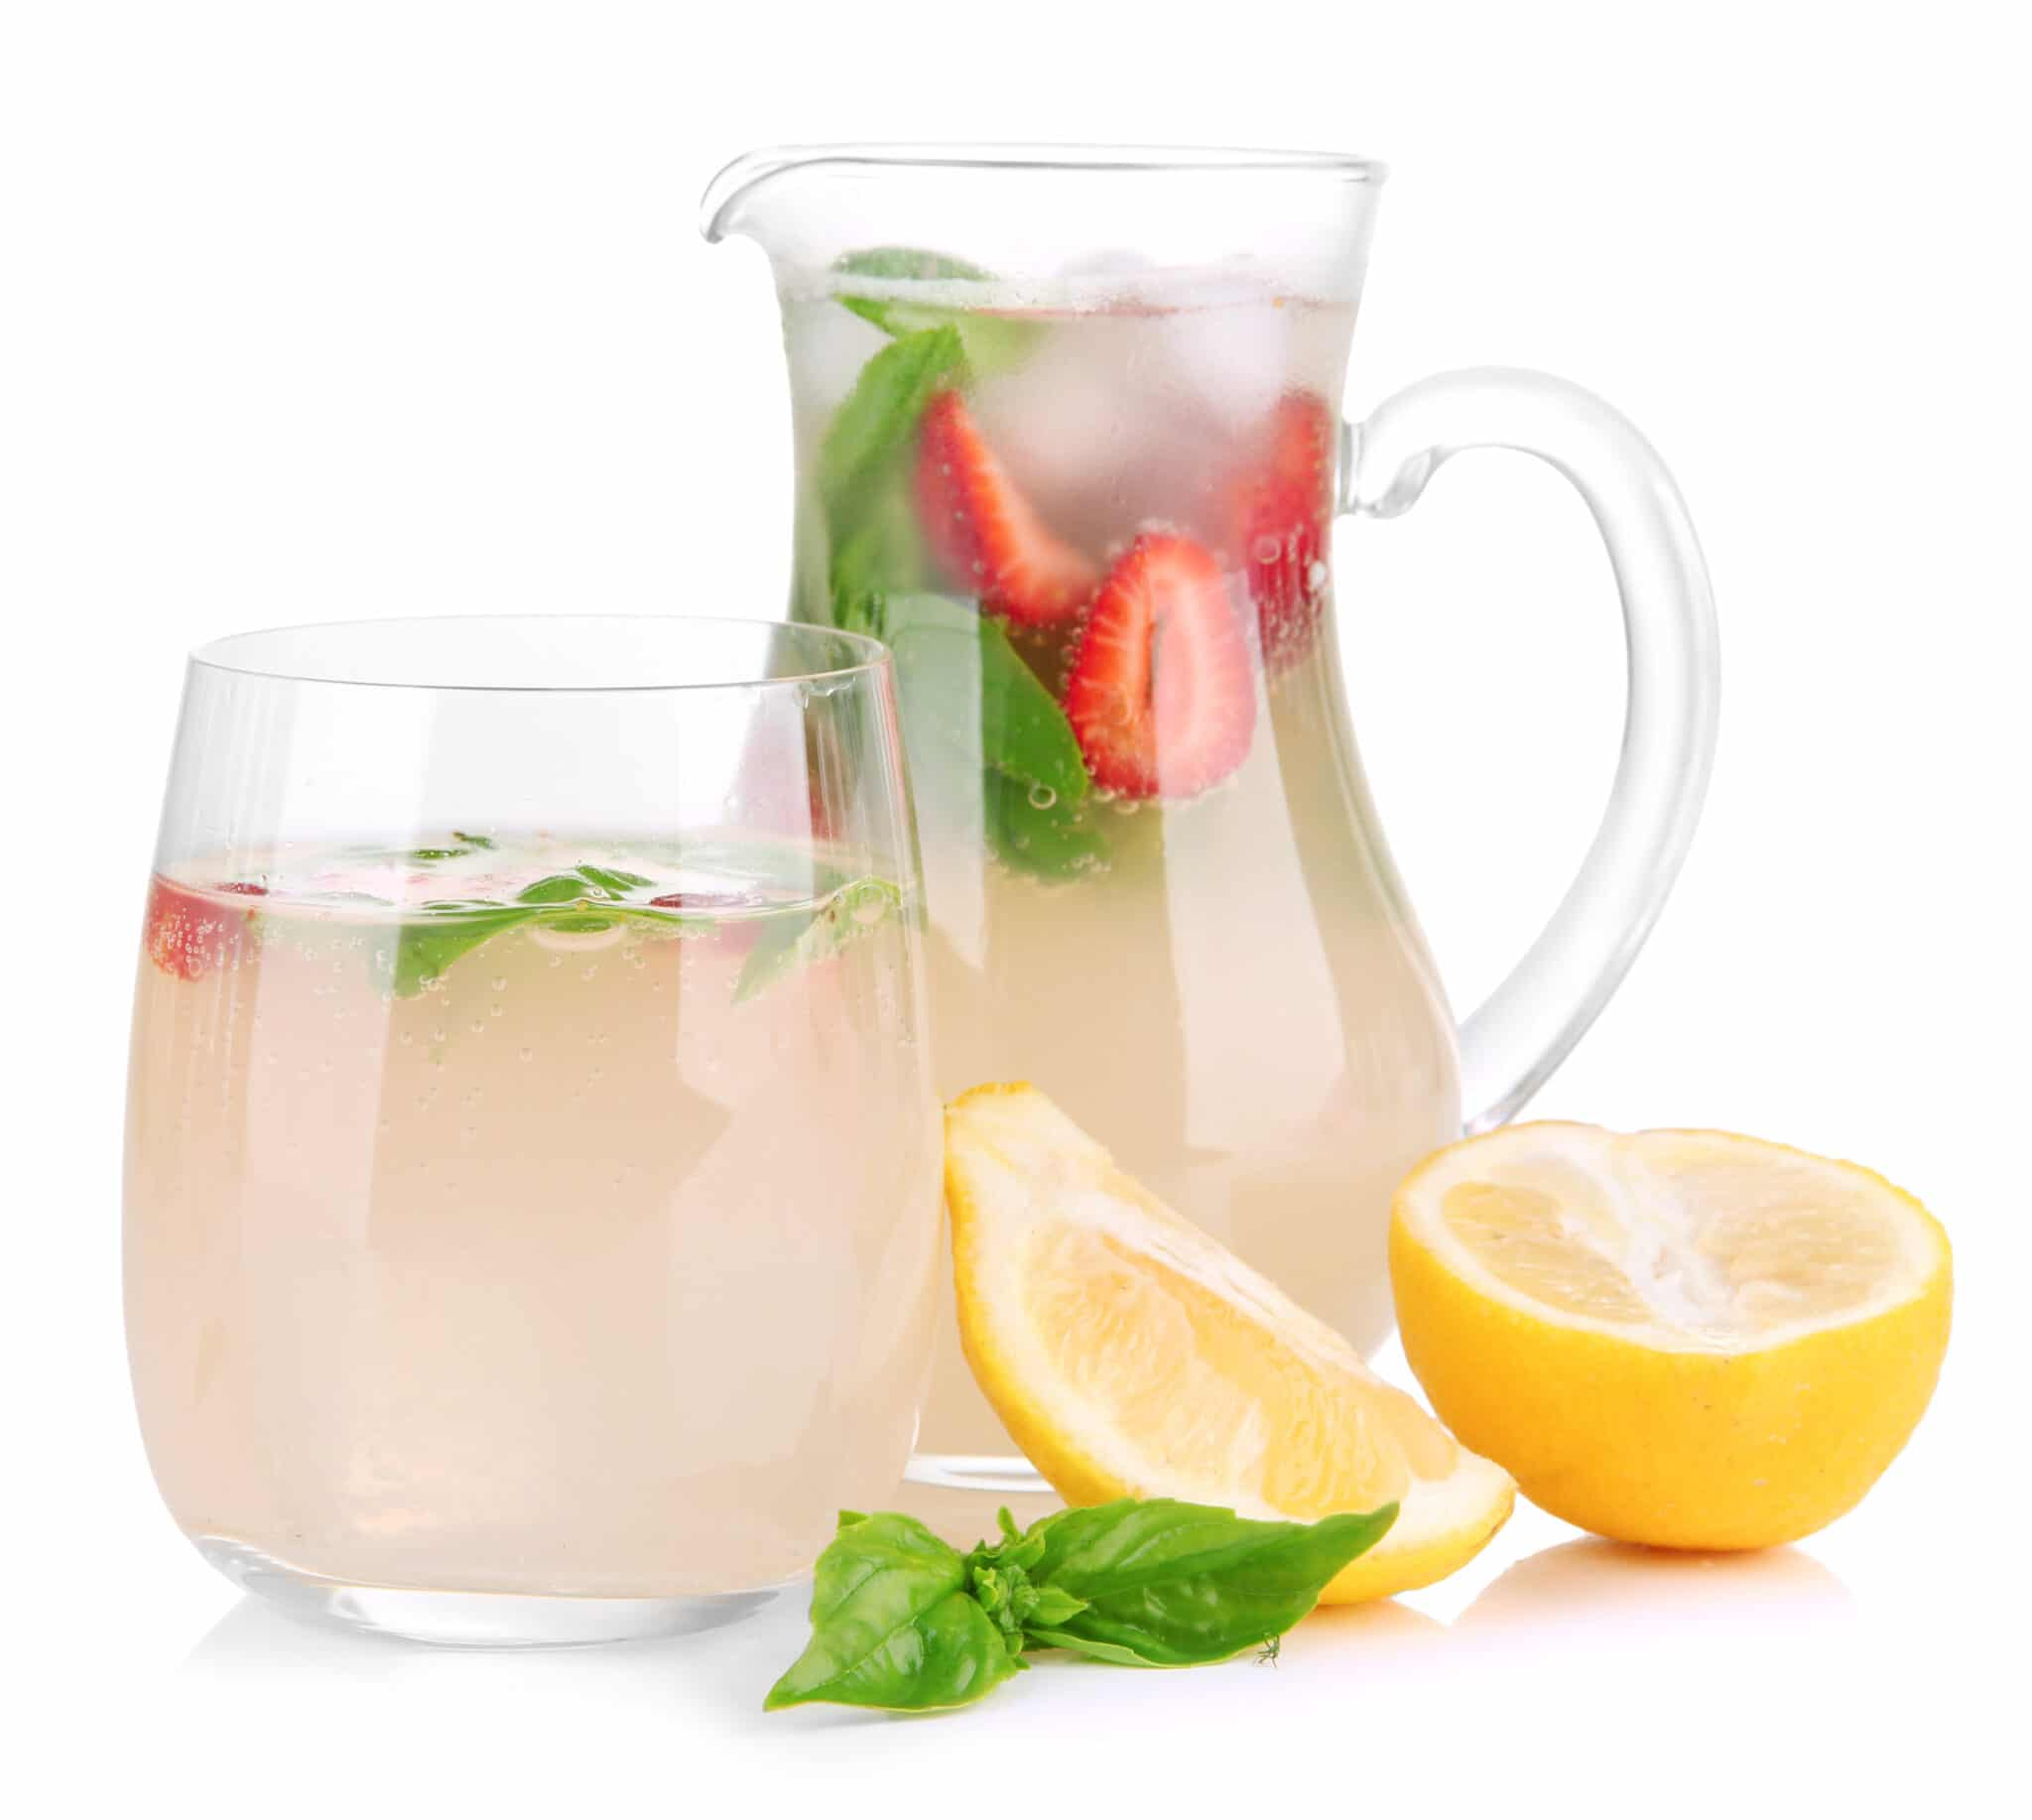 A glass and jug of light pink lemonade infused with strawberries, basil and fresh lemon.  Lemon wedges and basil can be seen on the table in front of the jug.